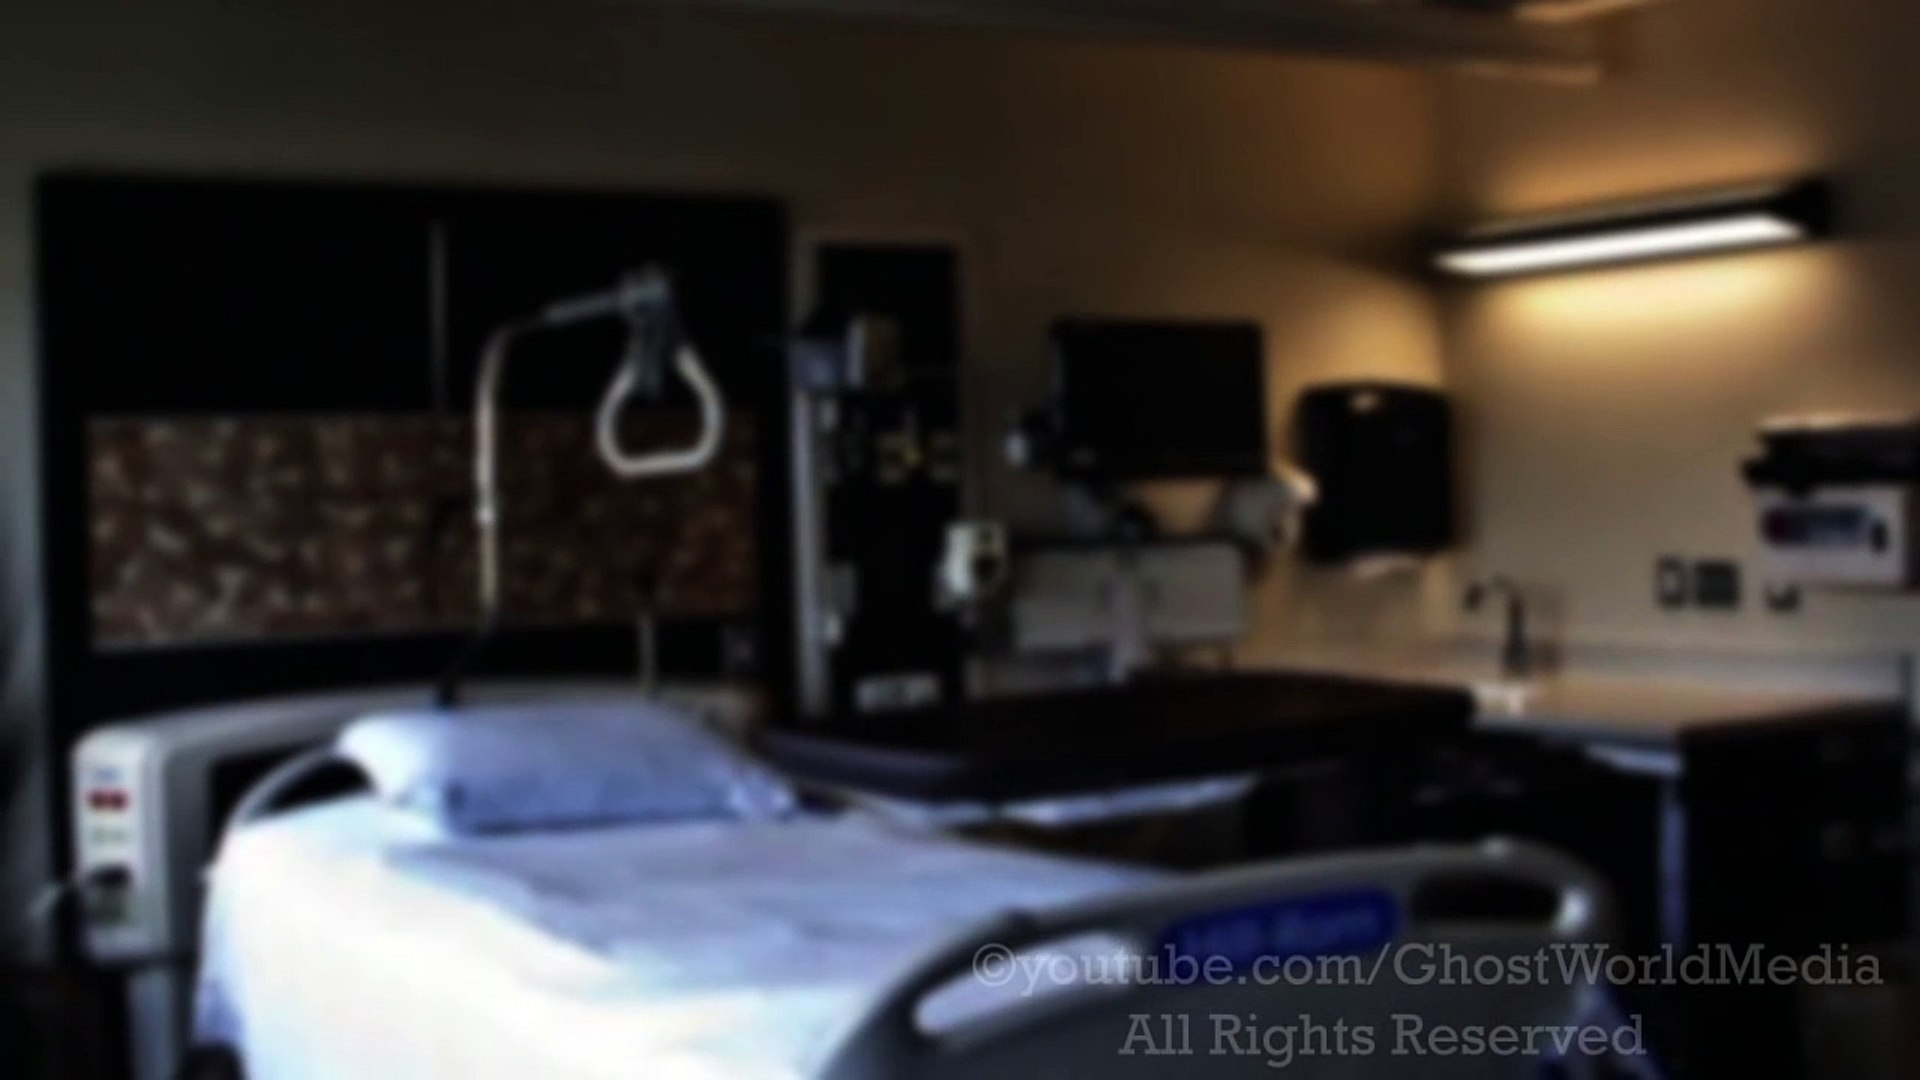 SCARY GHOST VIDEOS Real ghost caught on tape in the hospital Scary videos of ghost caught on tape